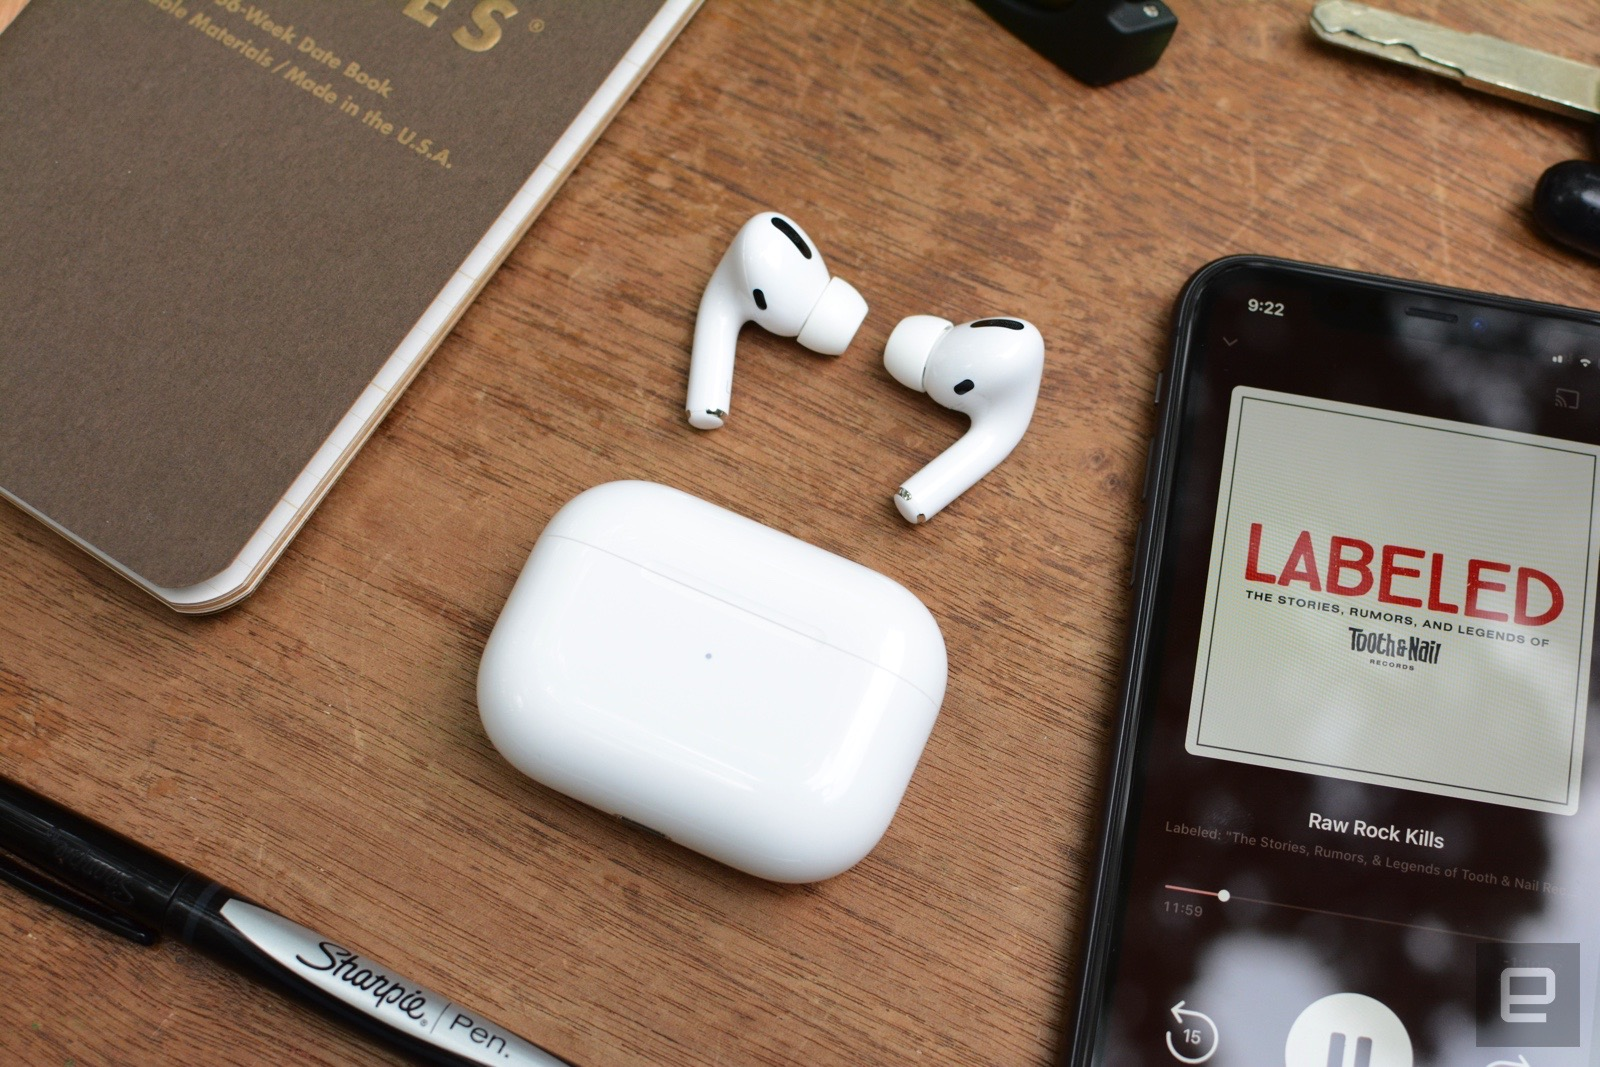 AirPods will soon switch between devices automatically